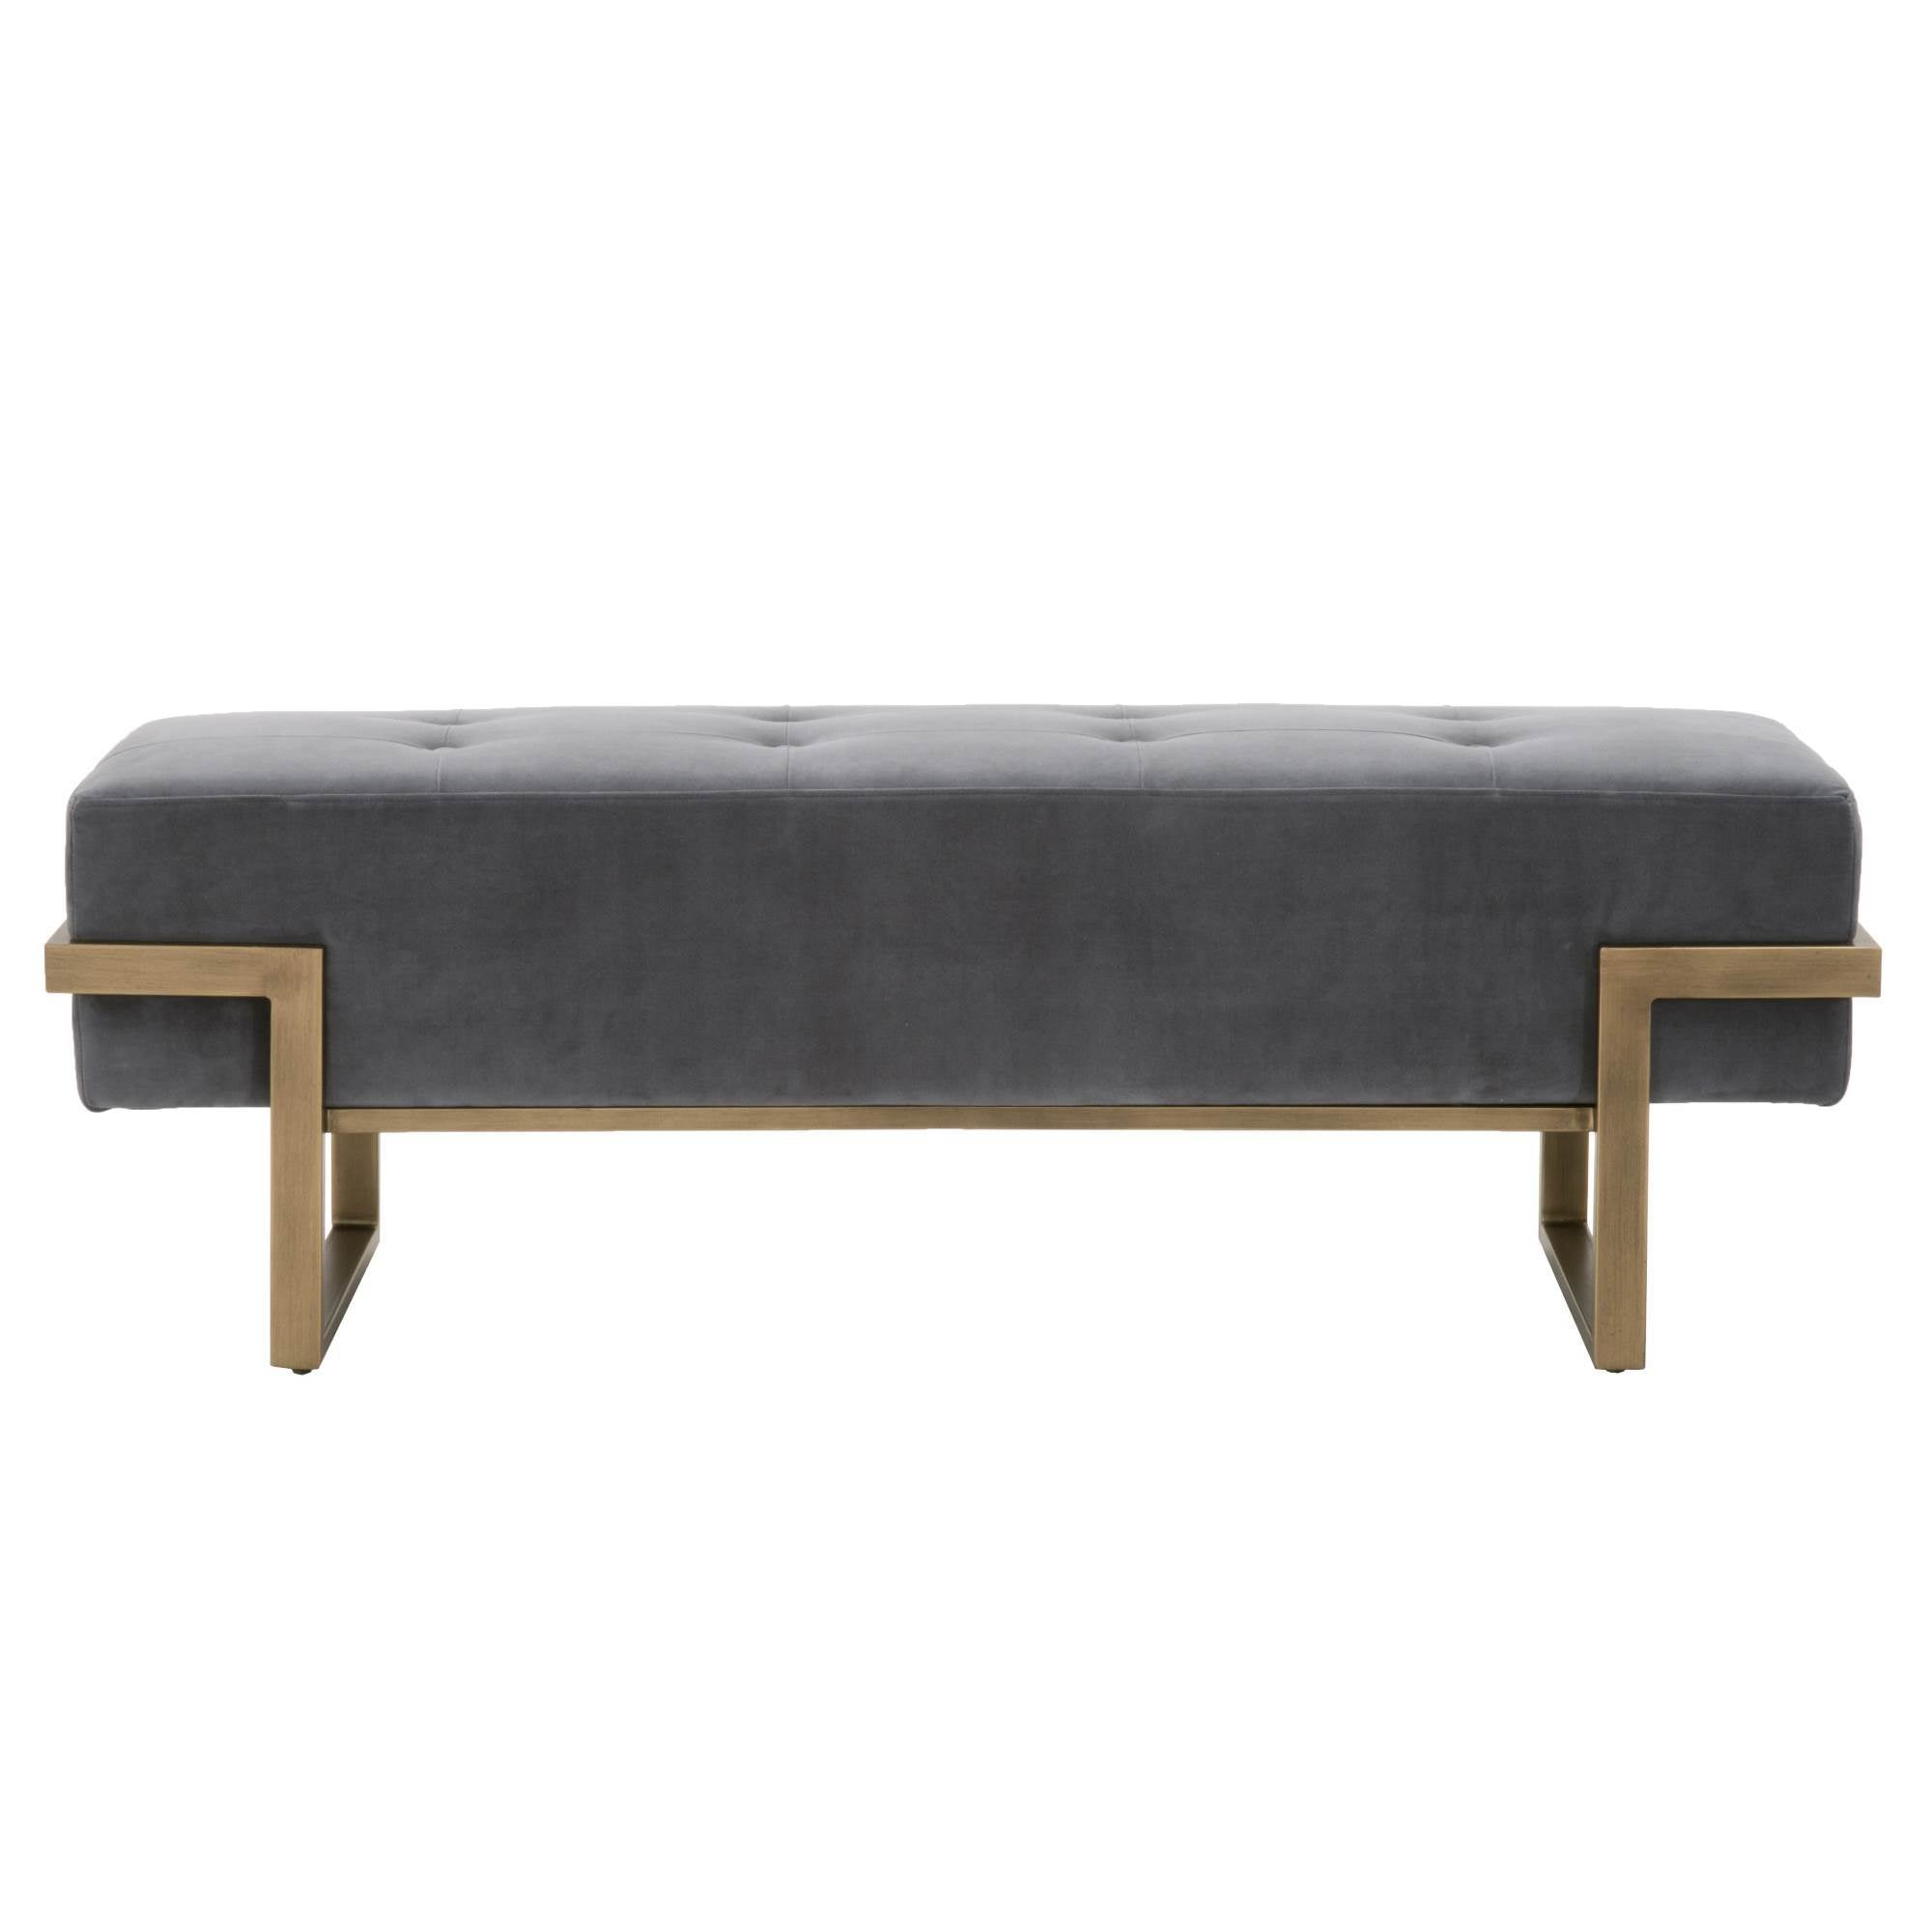 Fiona Upholstered Bench in Blush Gray Velvet